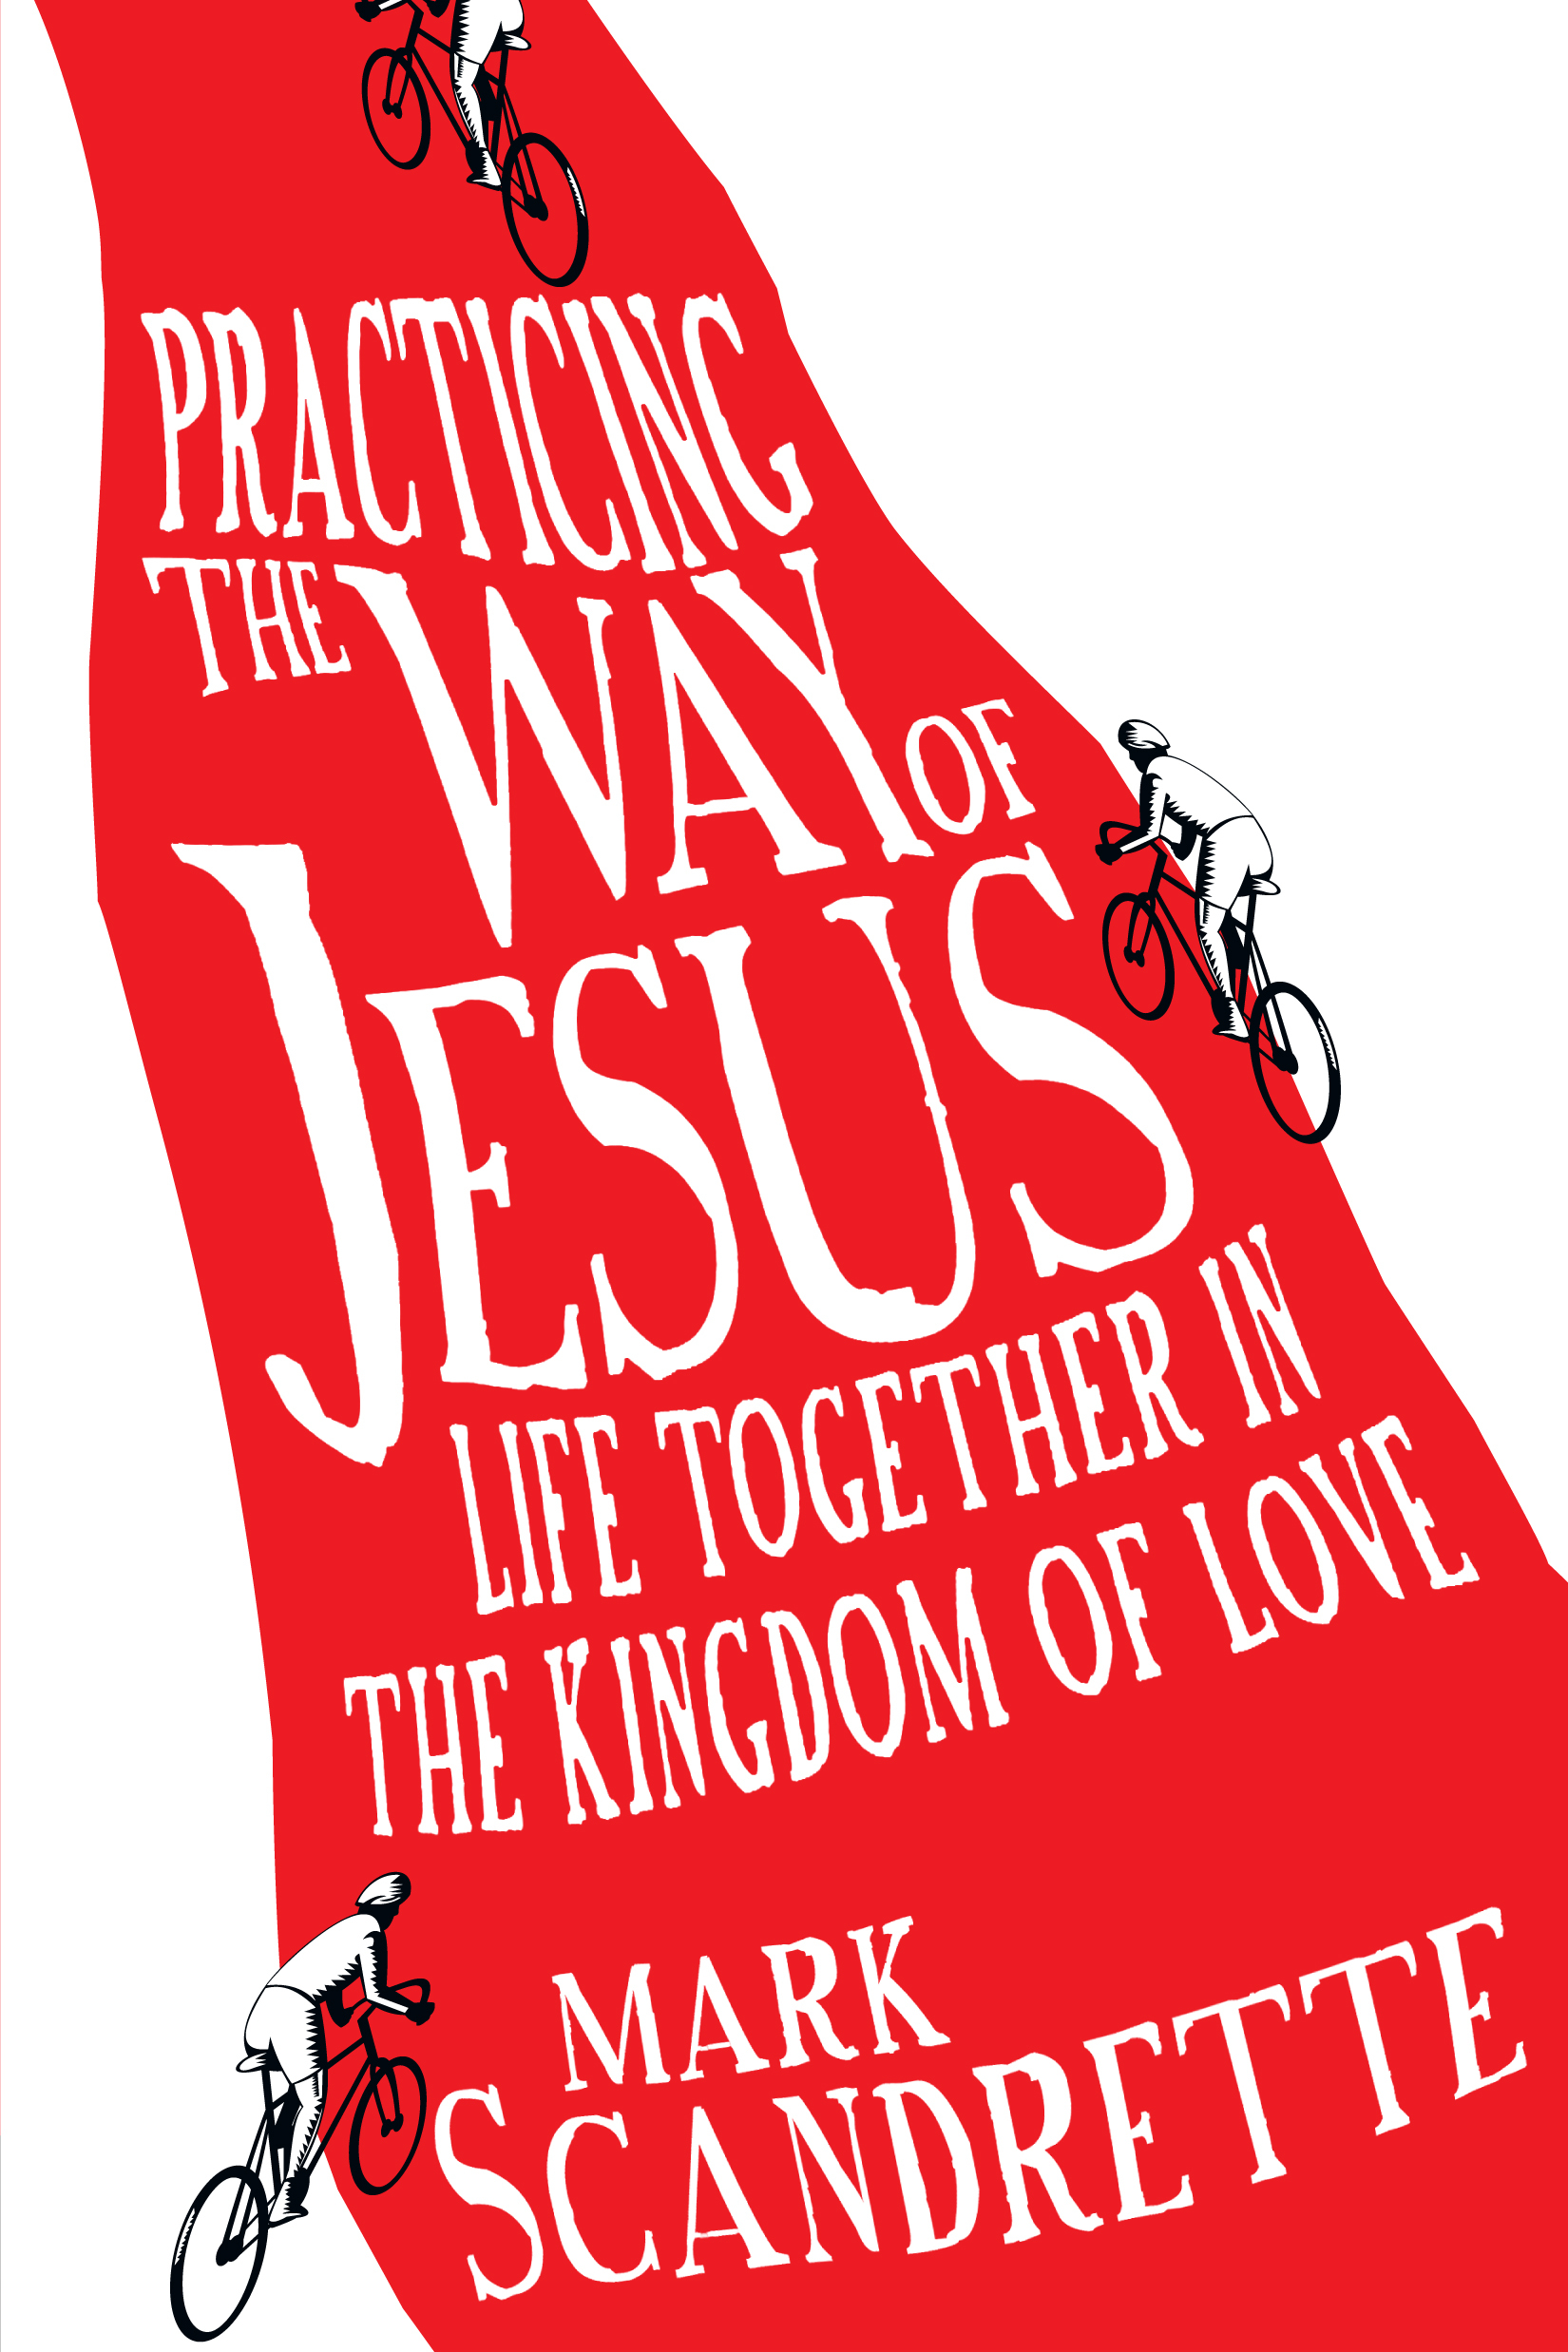 Practicing the Way of Jesus Life Together in the Kingdom of Love